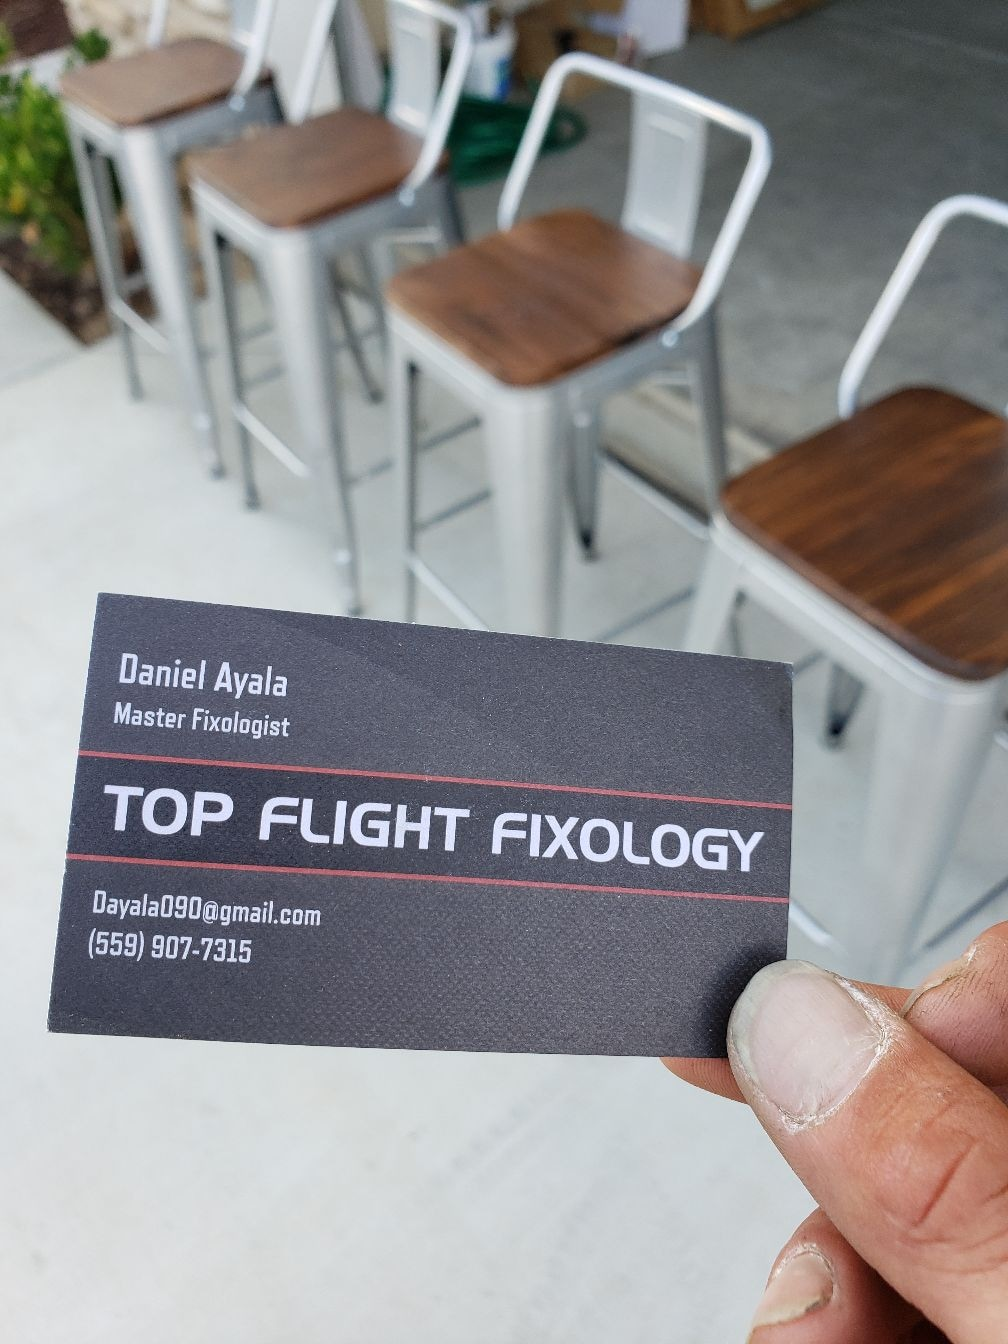 Top Flight Fixology